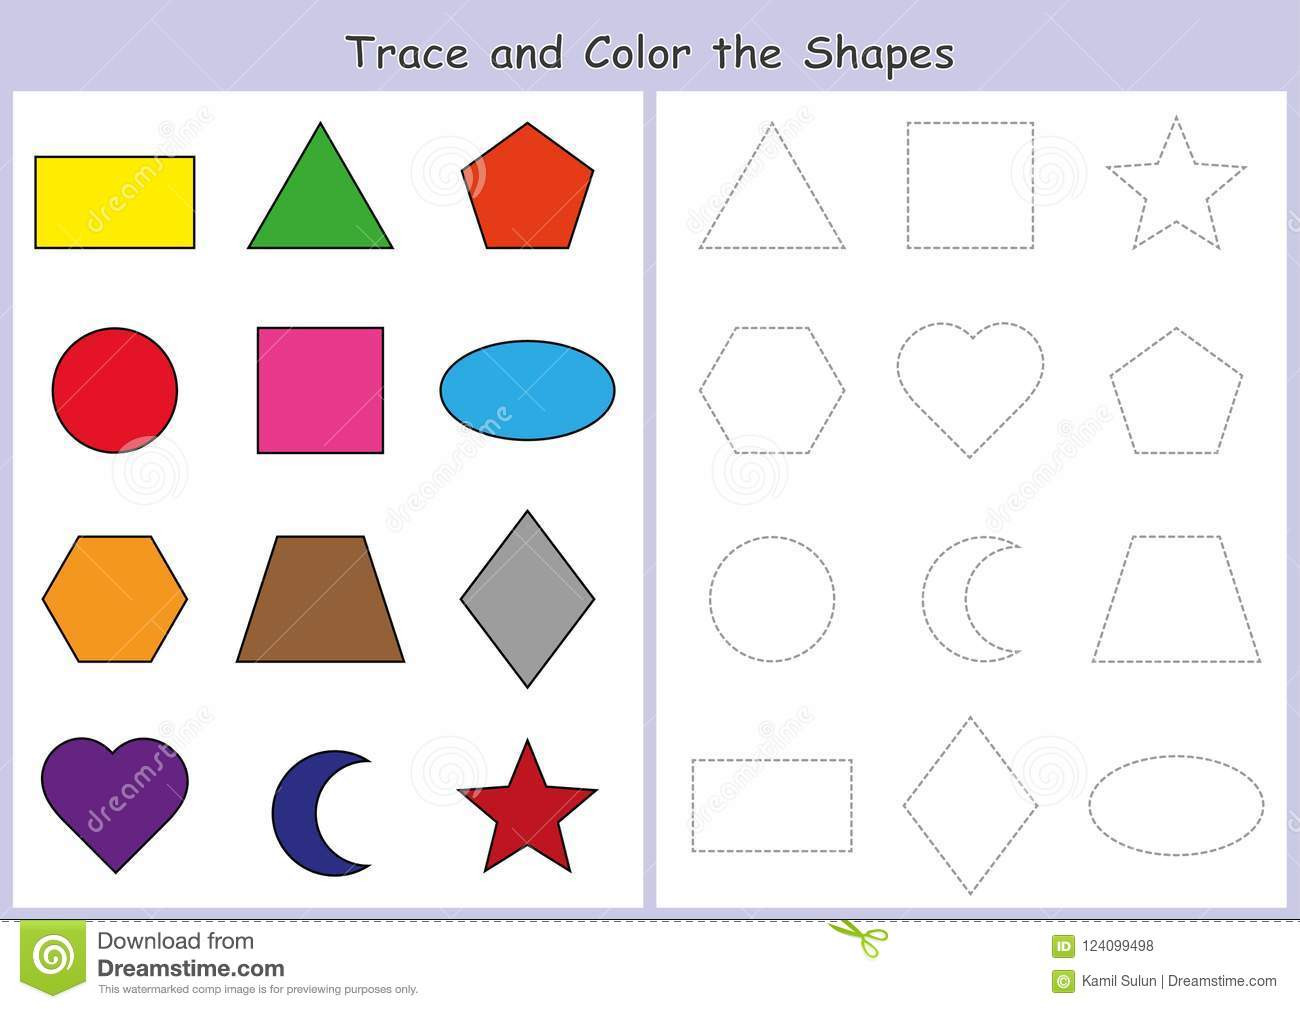 Fine Motor Skills Worksheets Tracing and Color the Geometric Shapes Worksheet for Kids